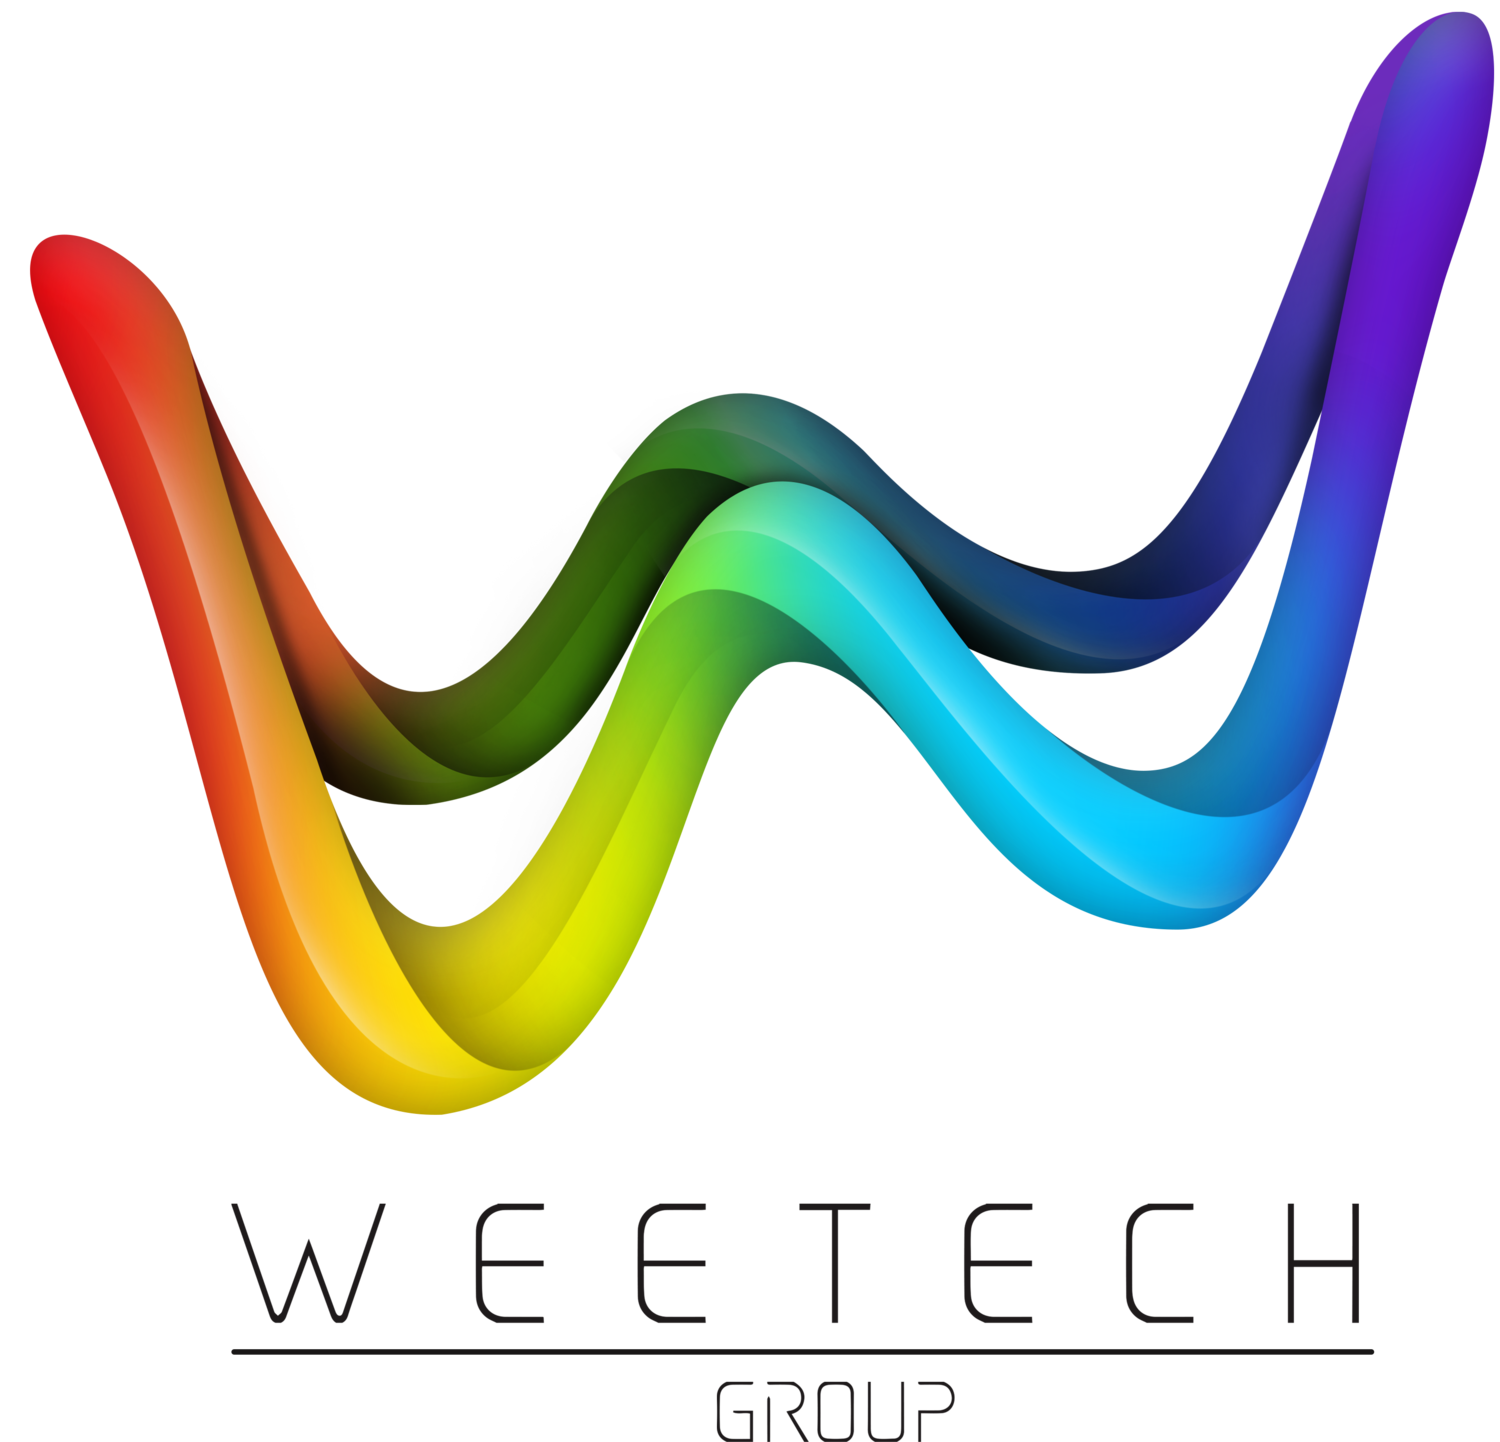 WeeTech Group